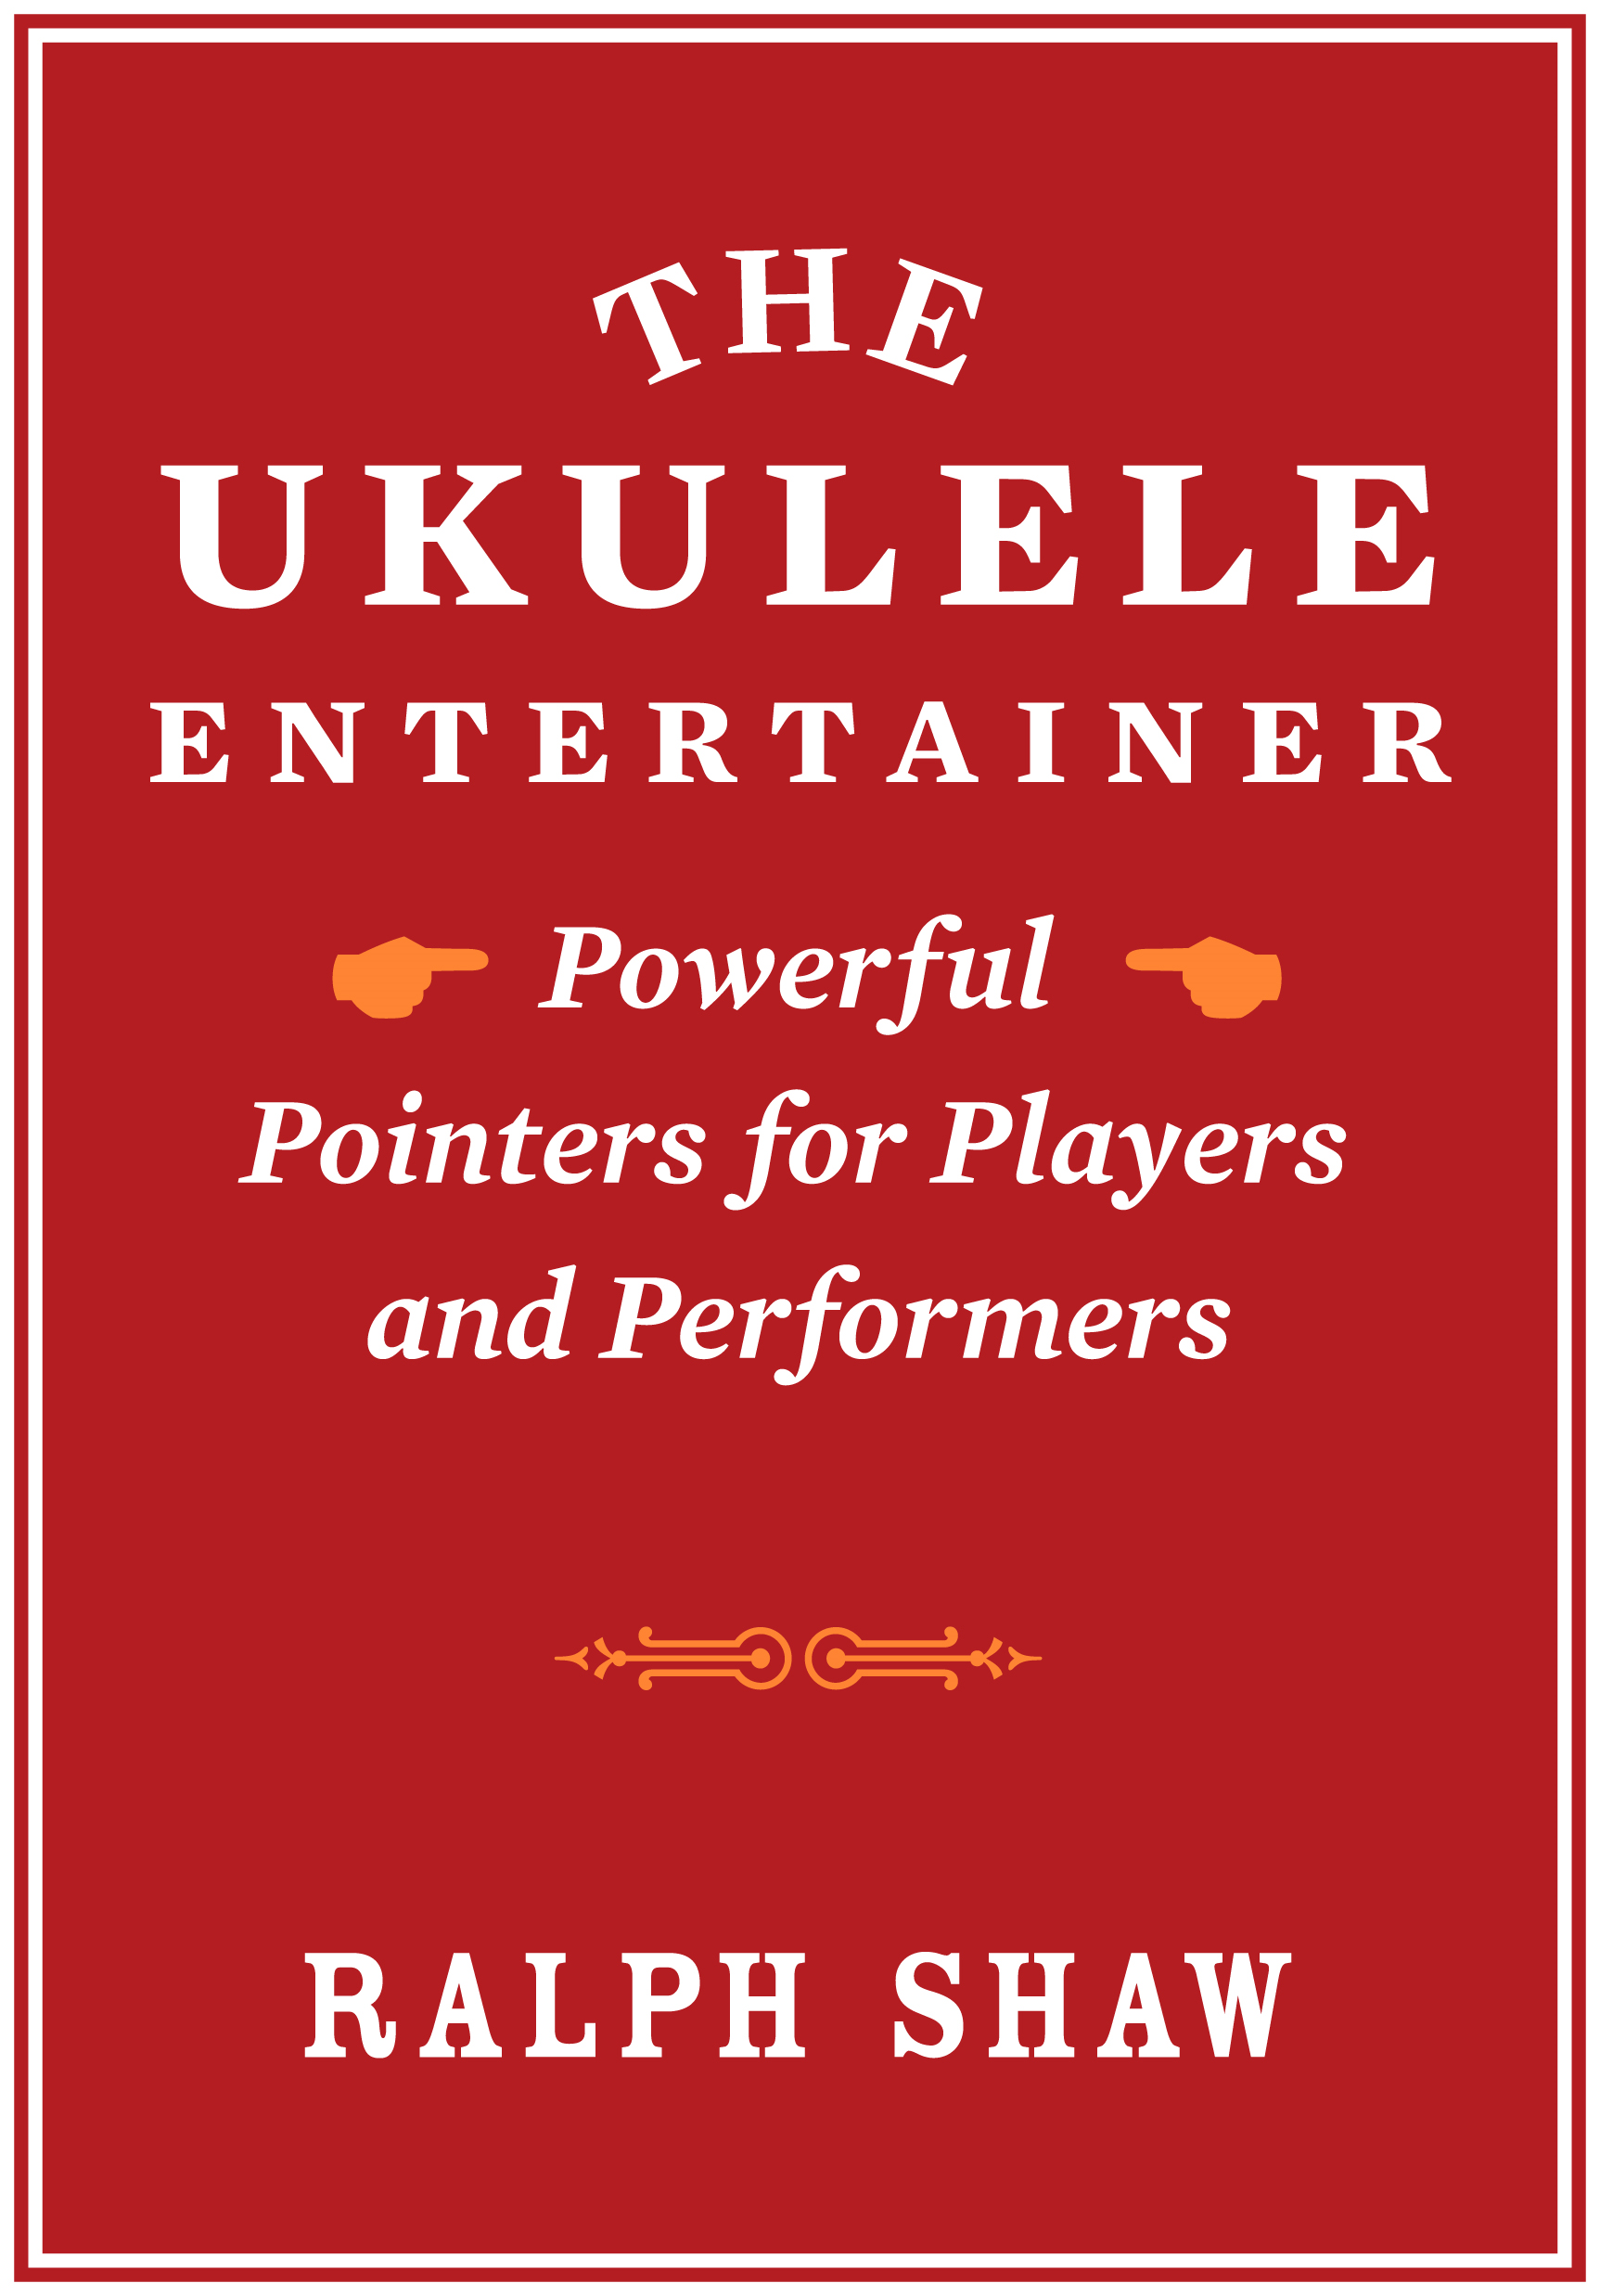 The Ukulele Entertainer: Powerful Pointers for Players and Performers